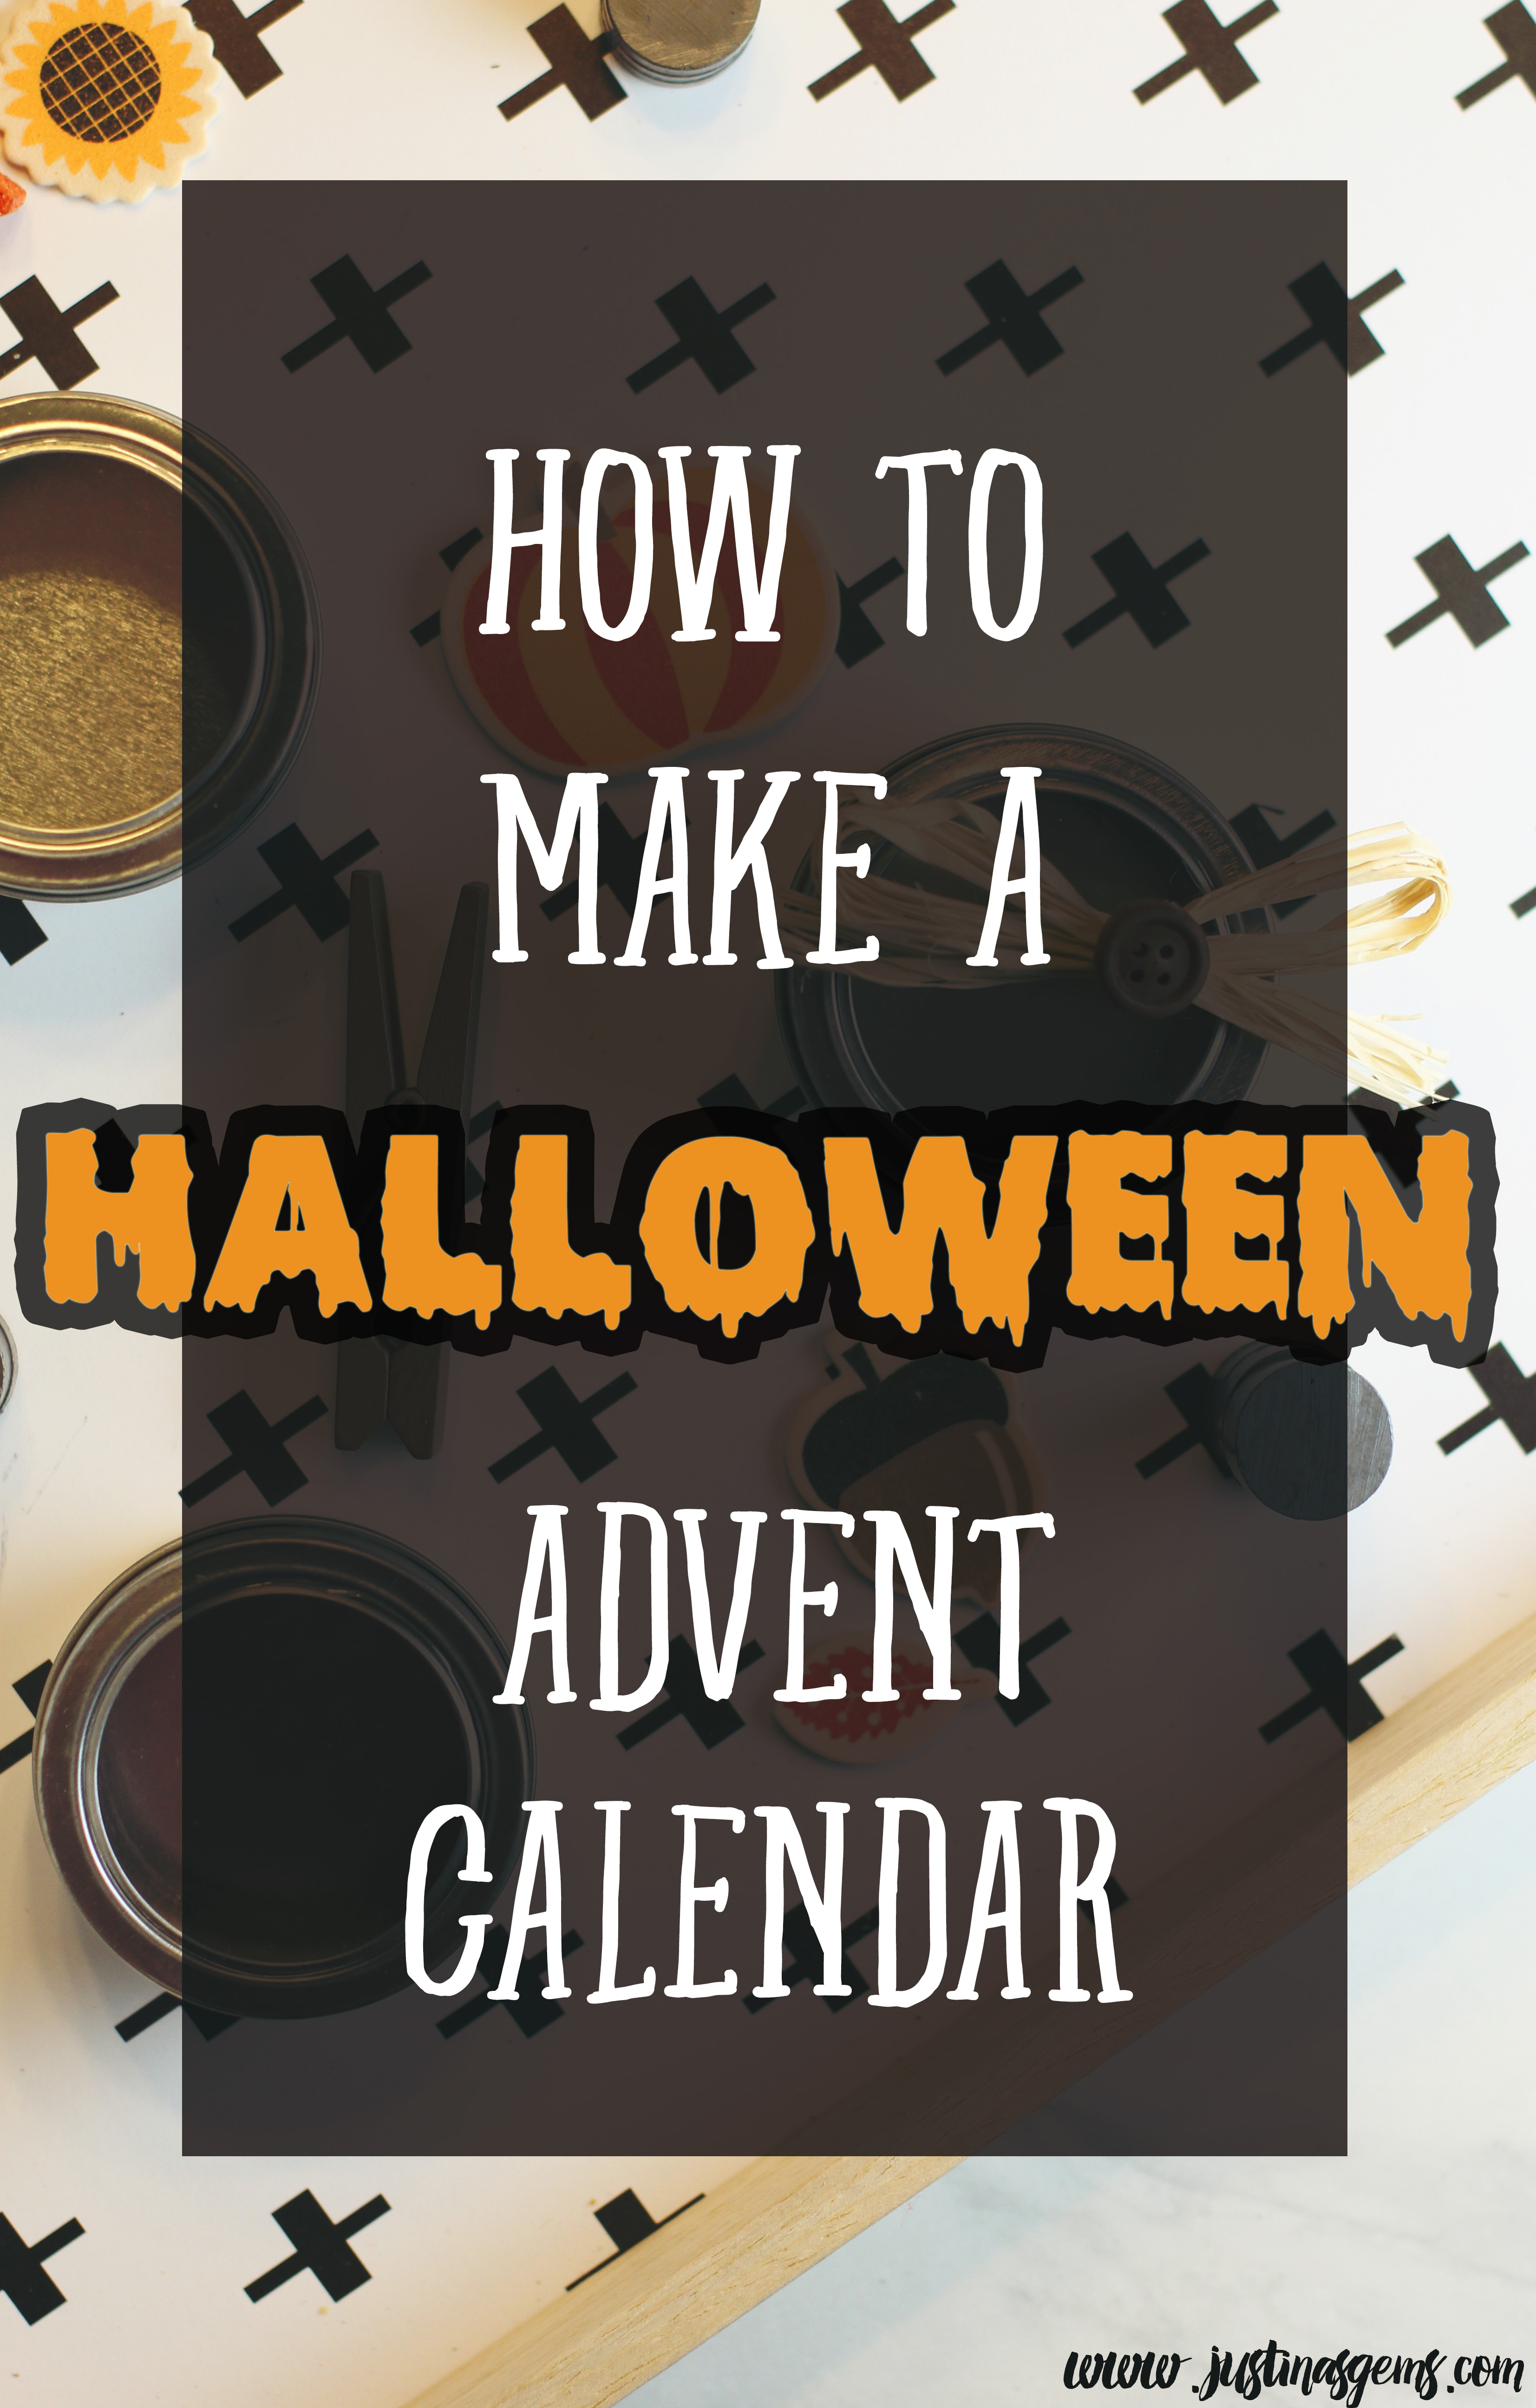 Diy halloween advent calendar justinas gems how to make a halloween advent calendar solutioingenieria